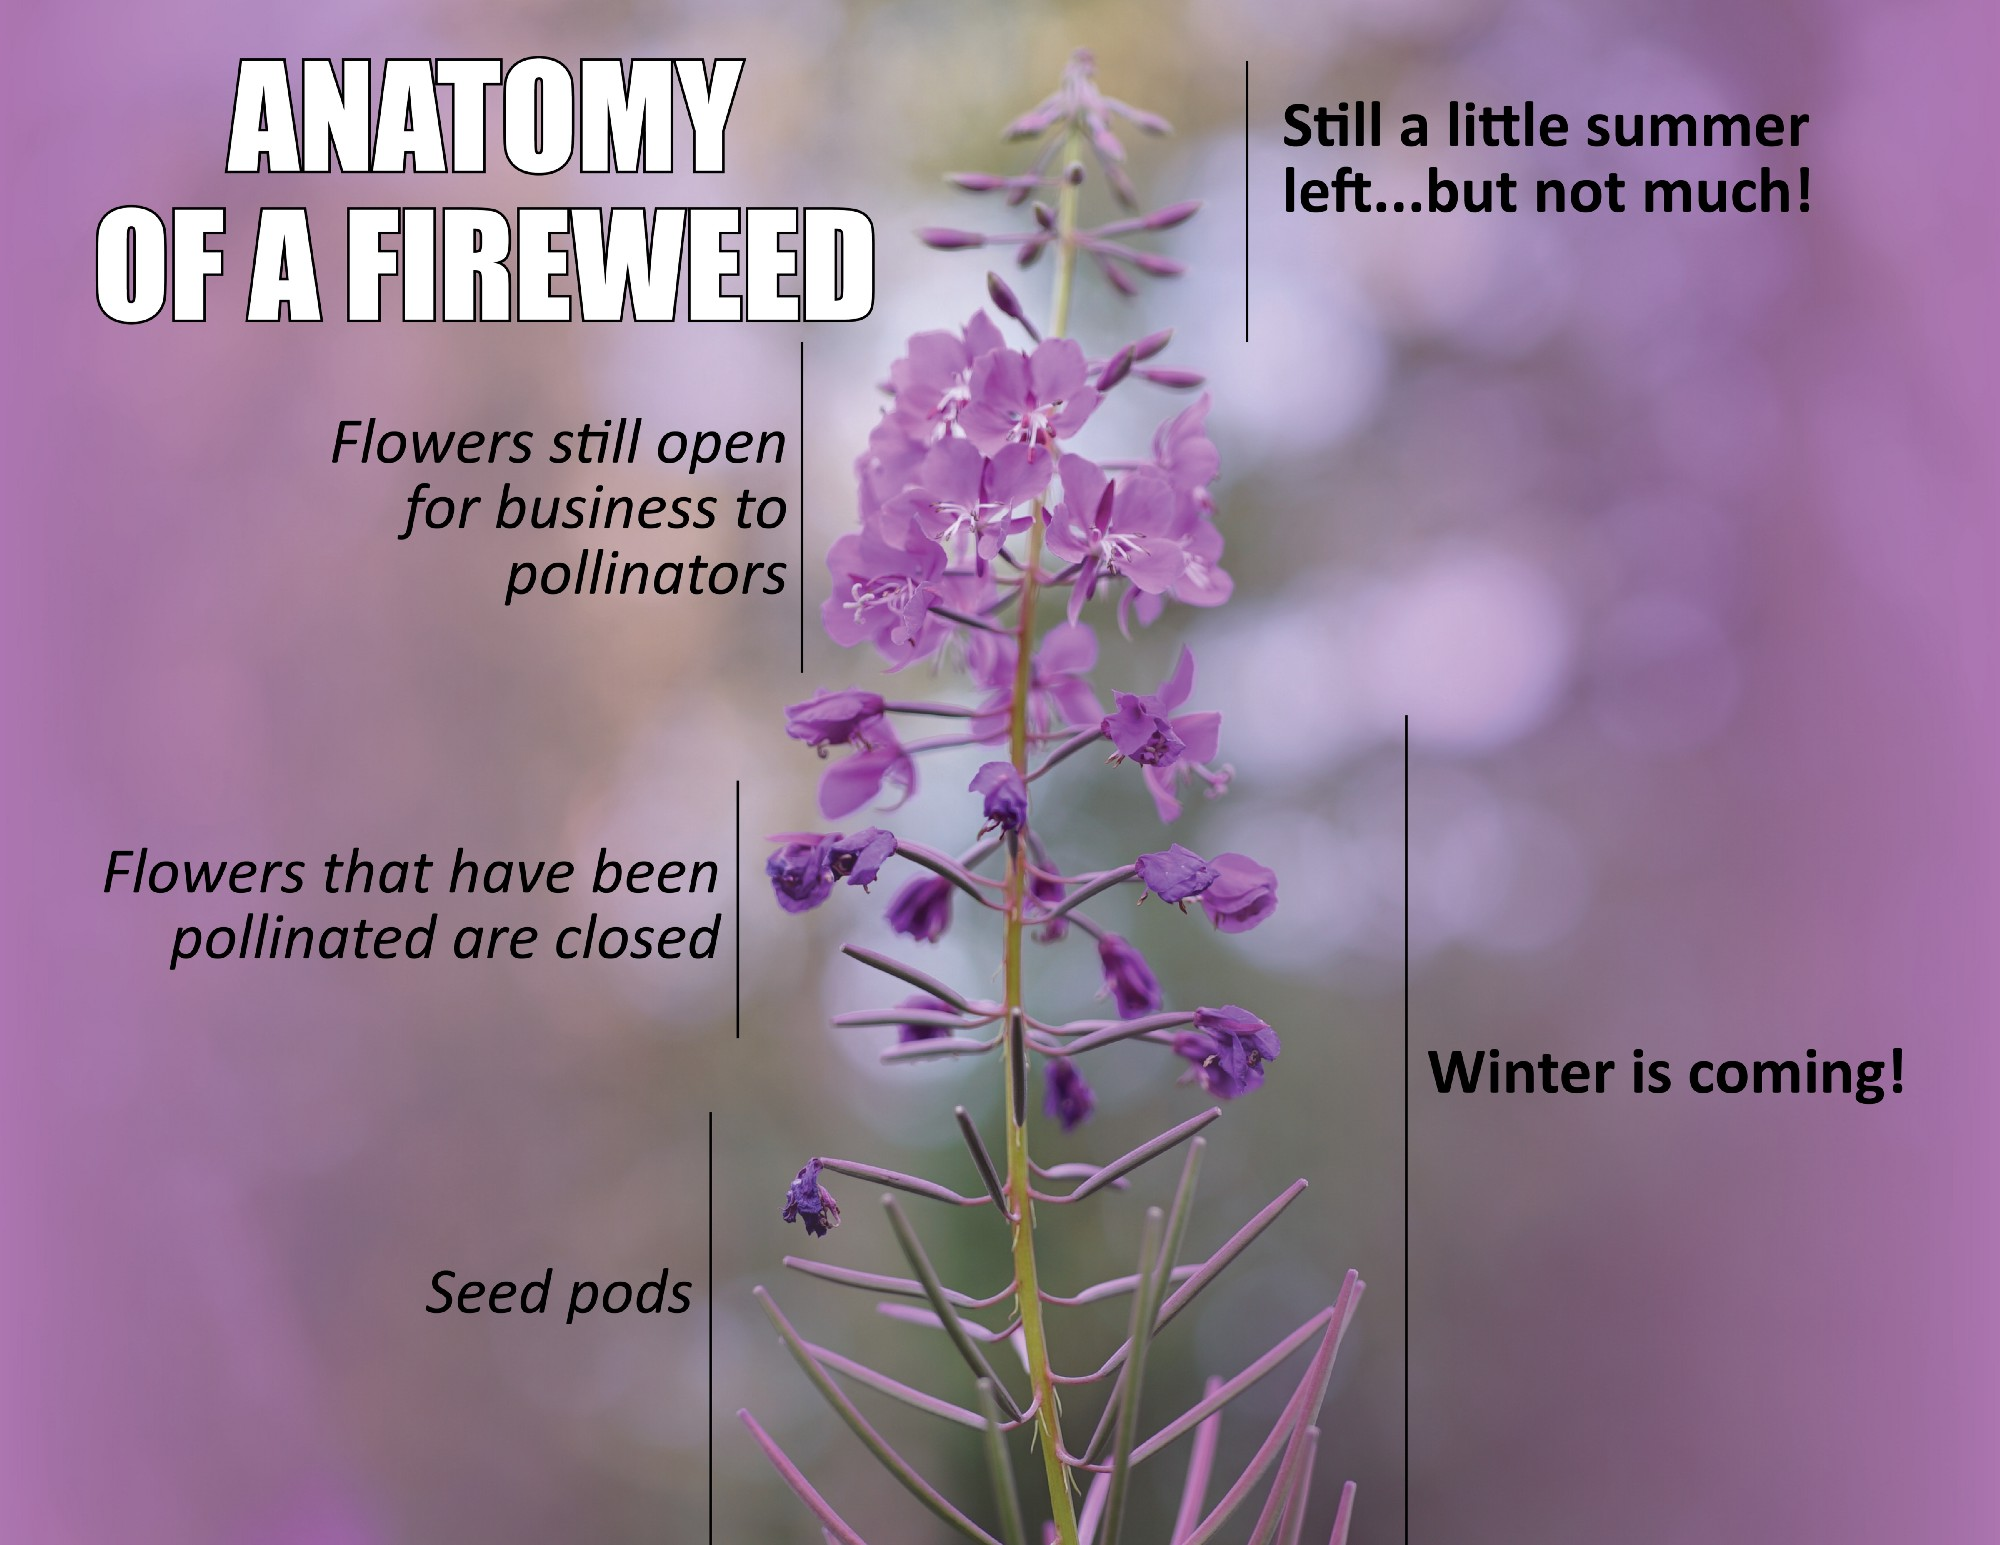 anatomy of fireweed showing progression through summer — seed pods, flowers